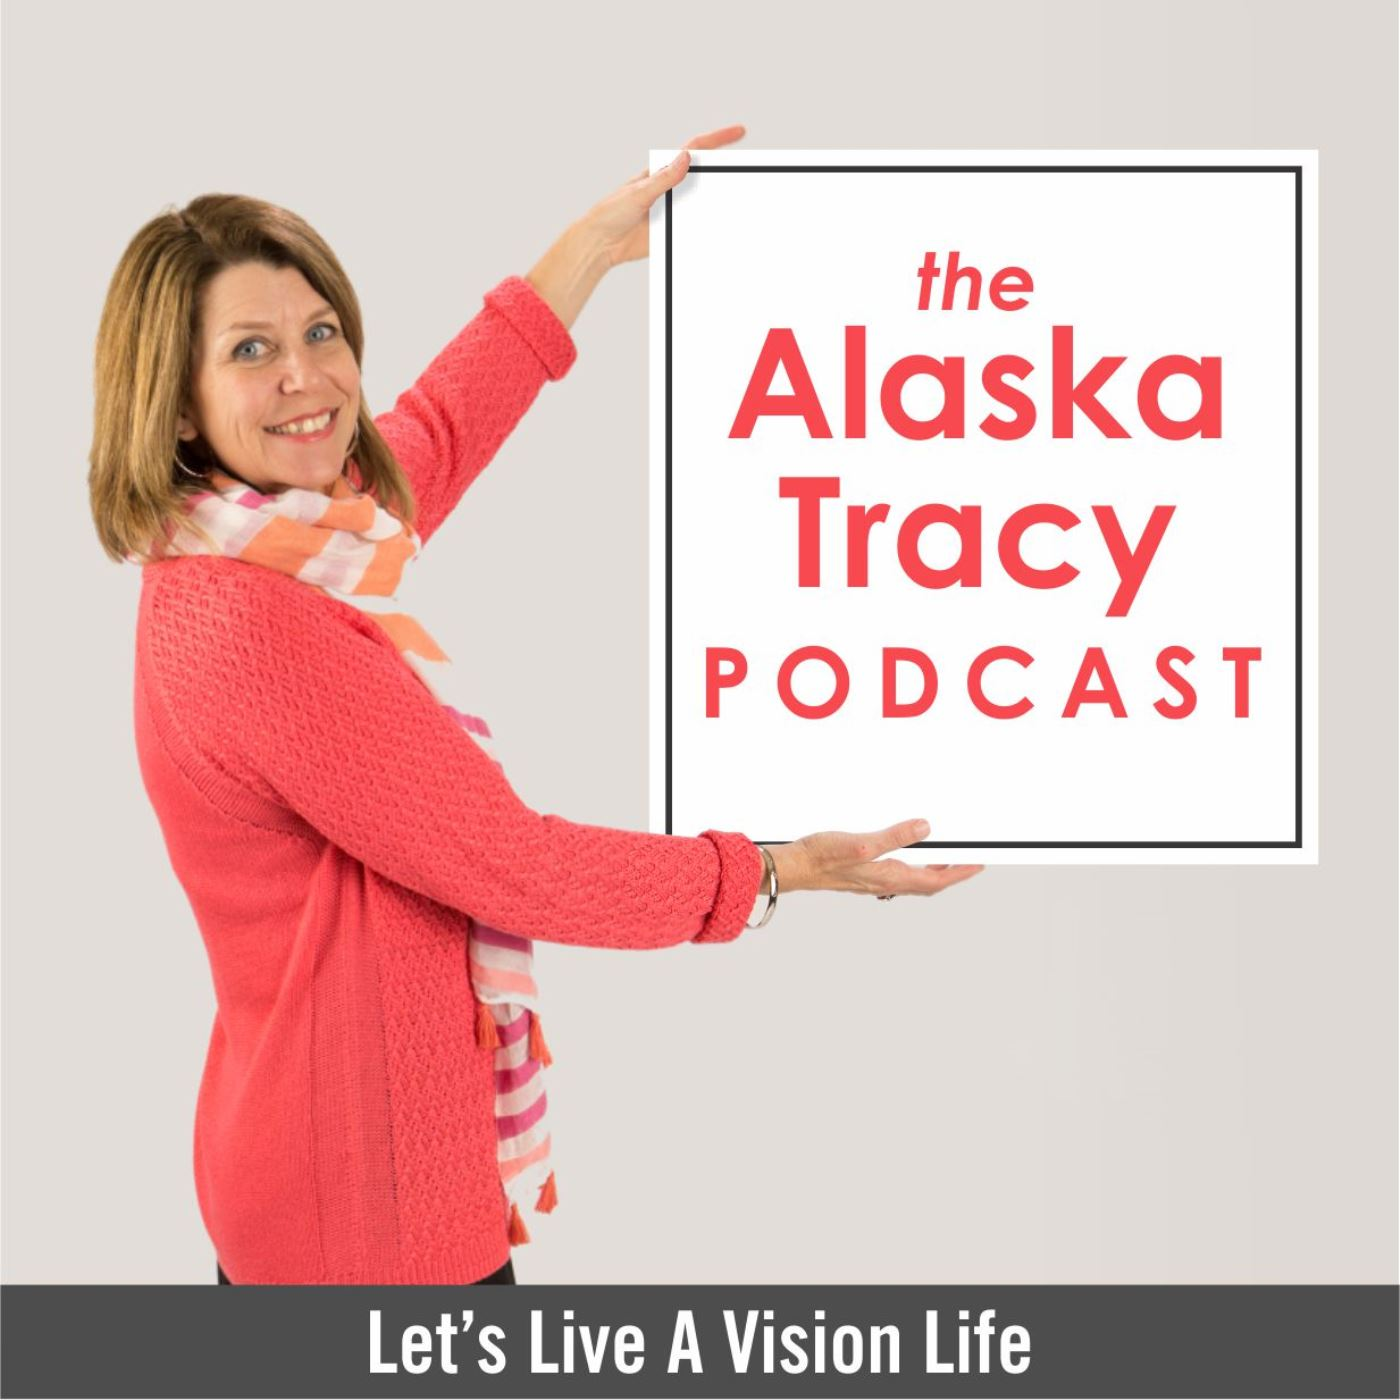 Alaska Tracy Podcast